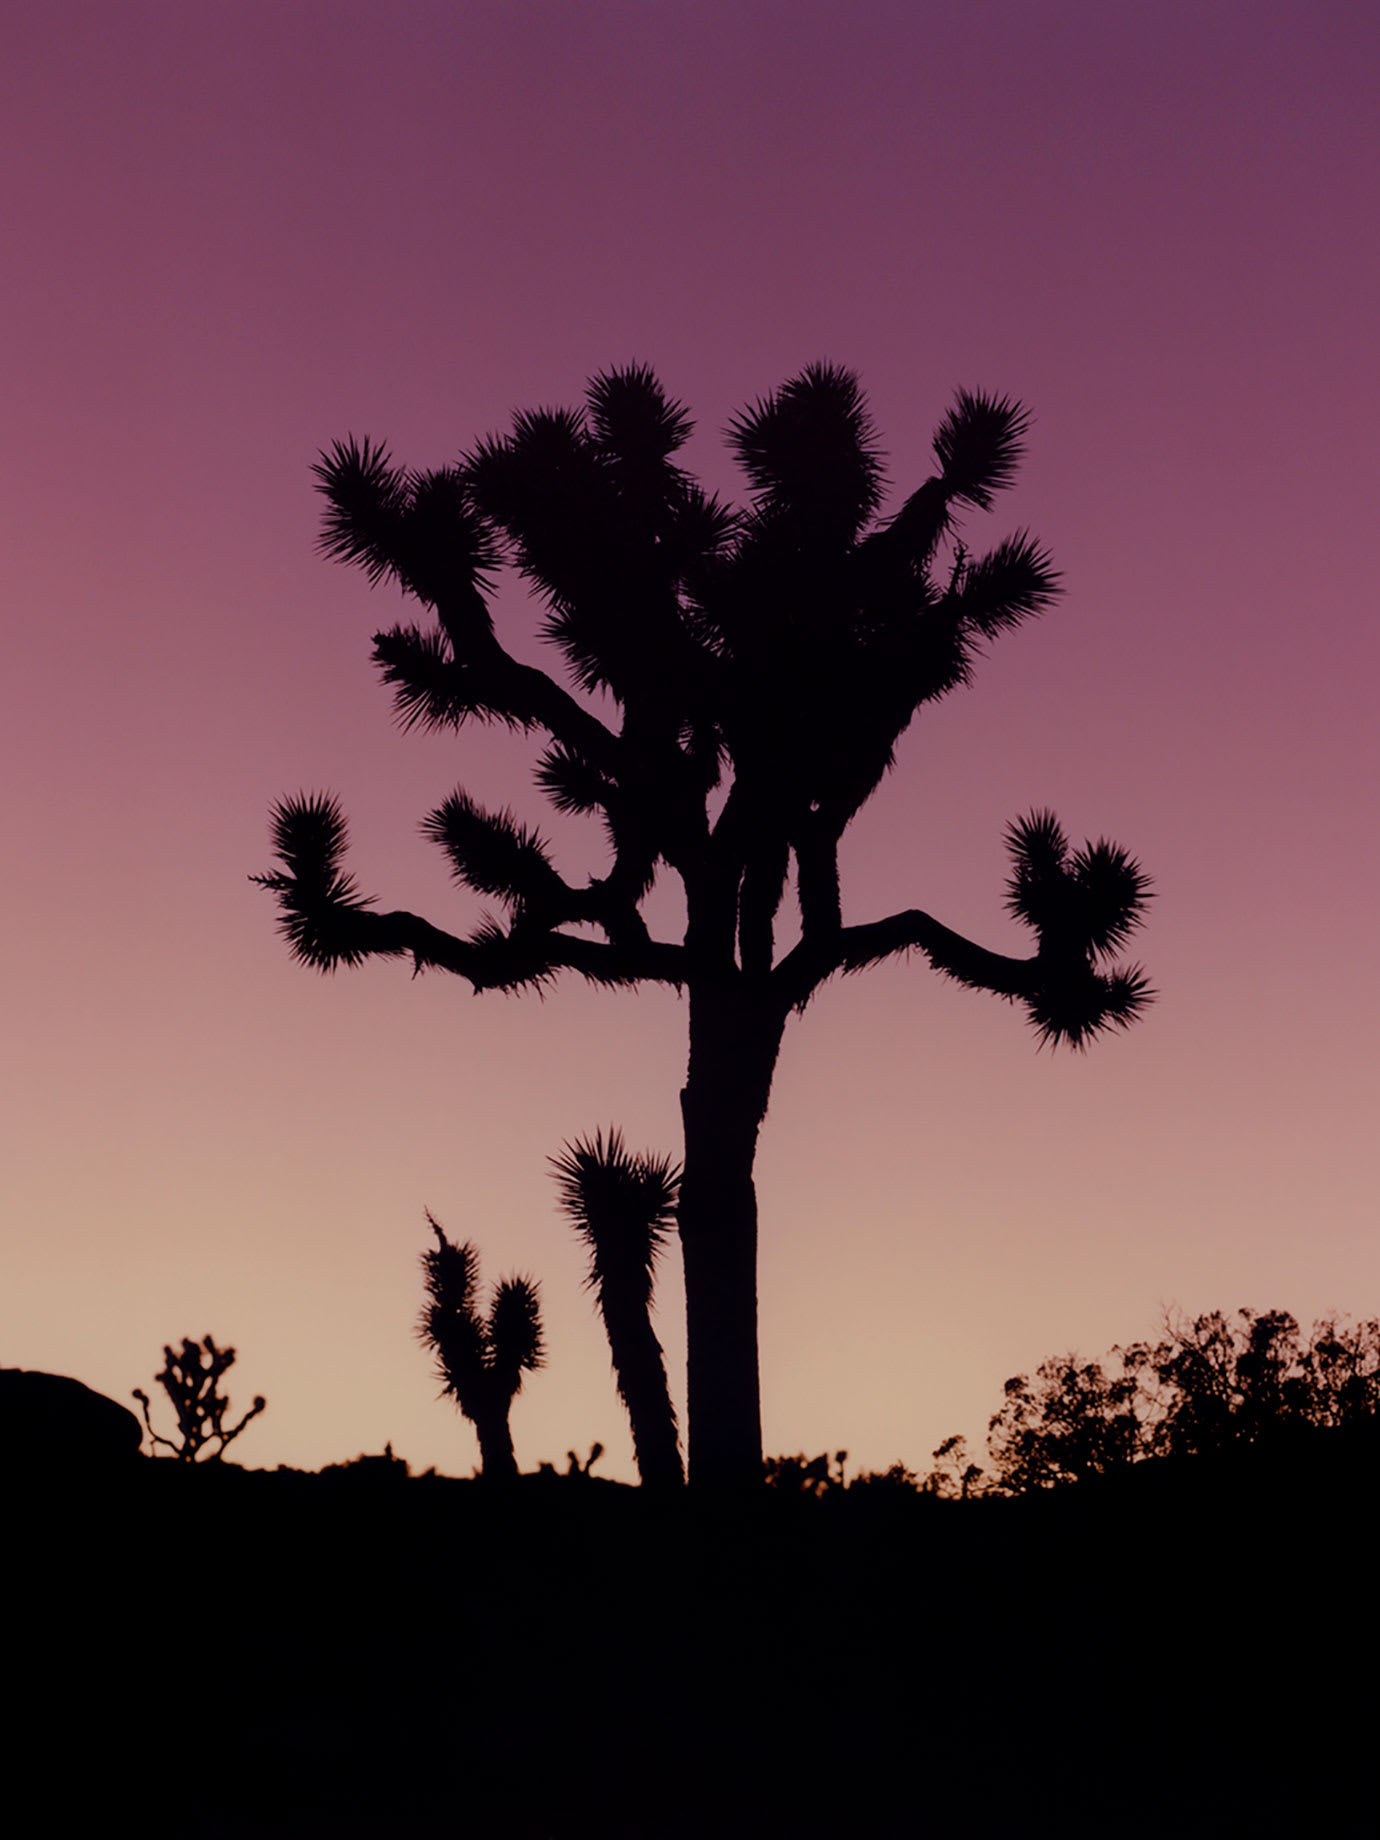 The silhouette of a cactus at sunset.